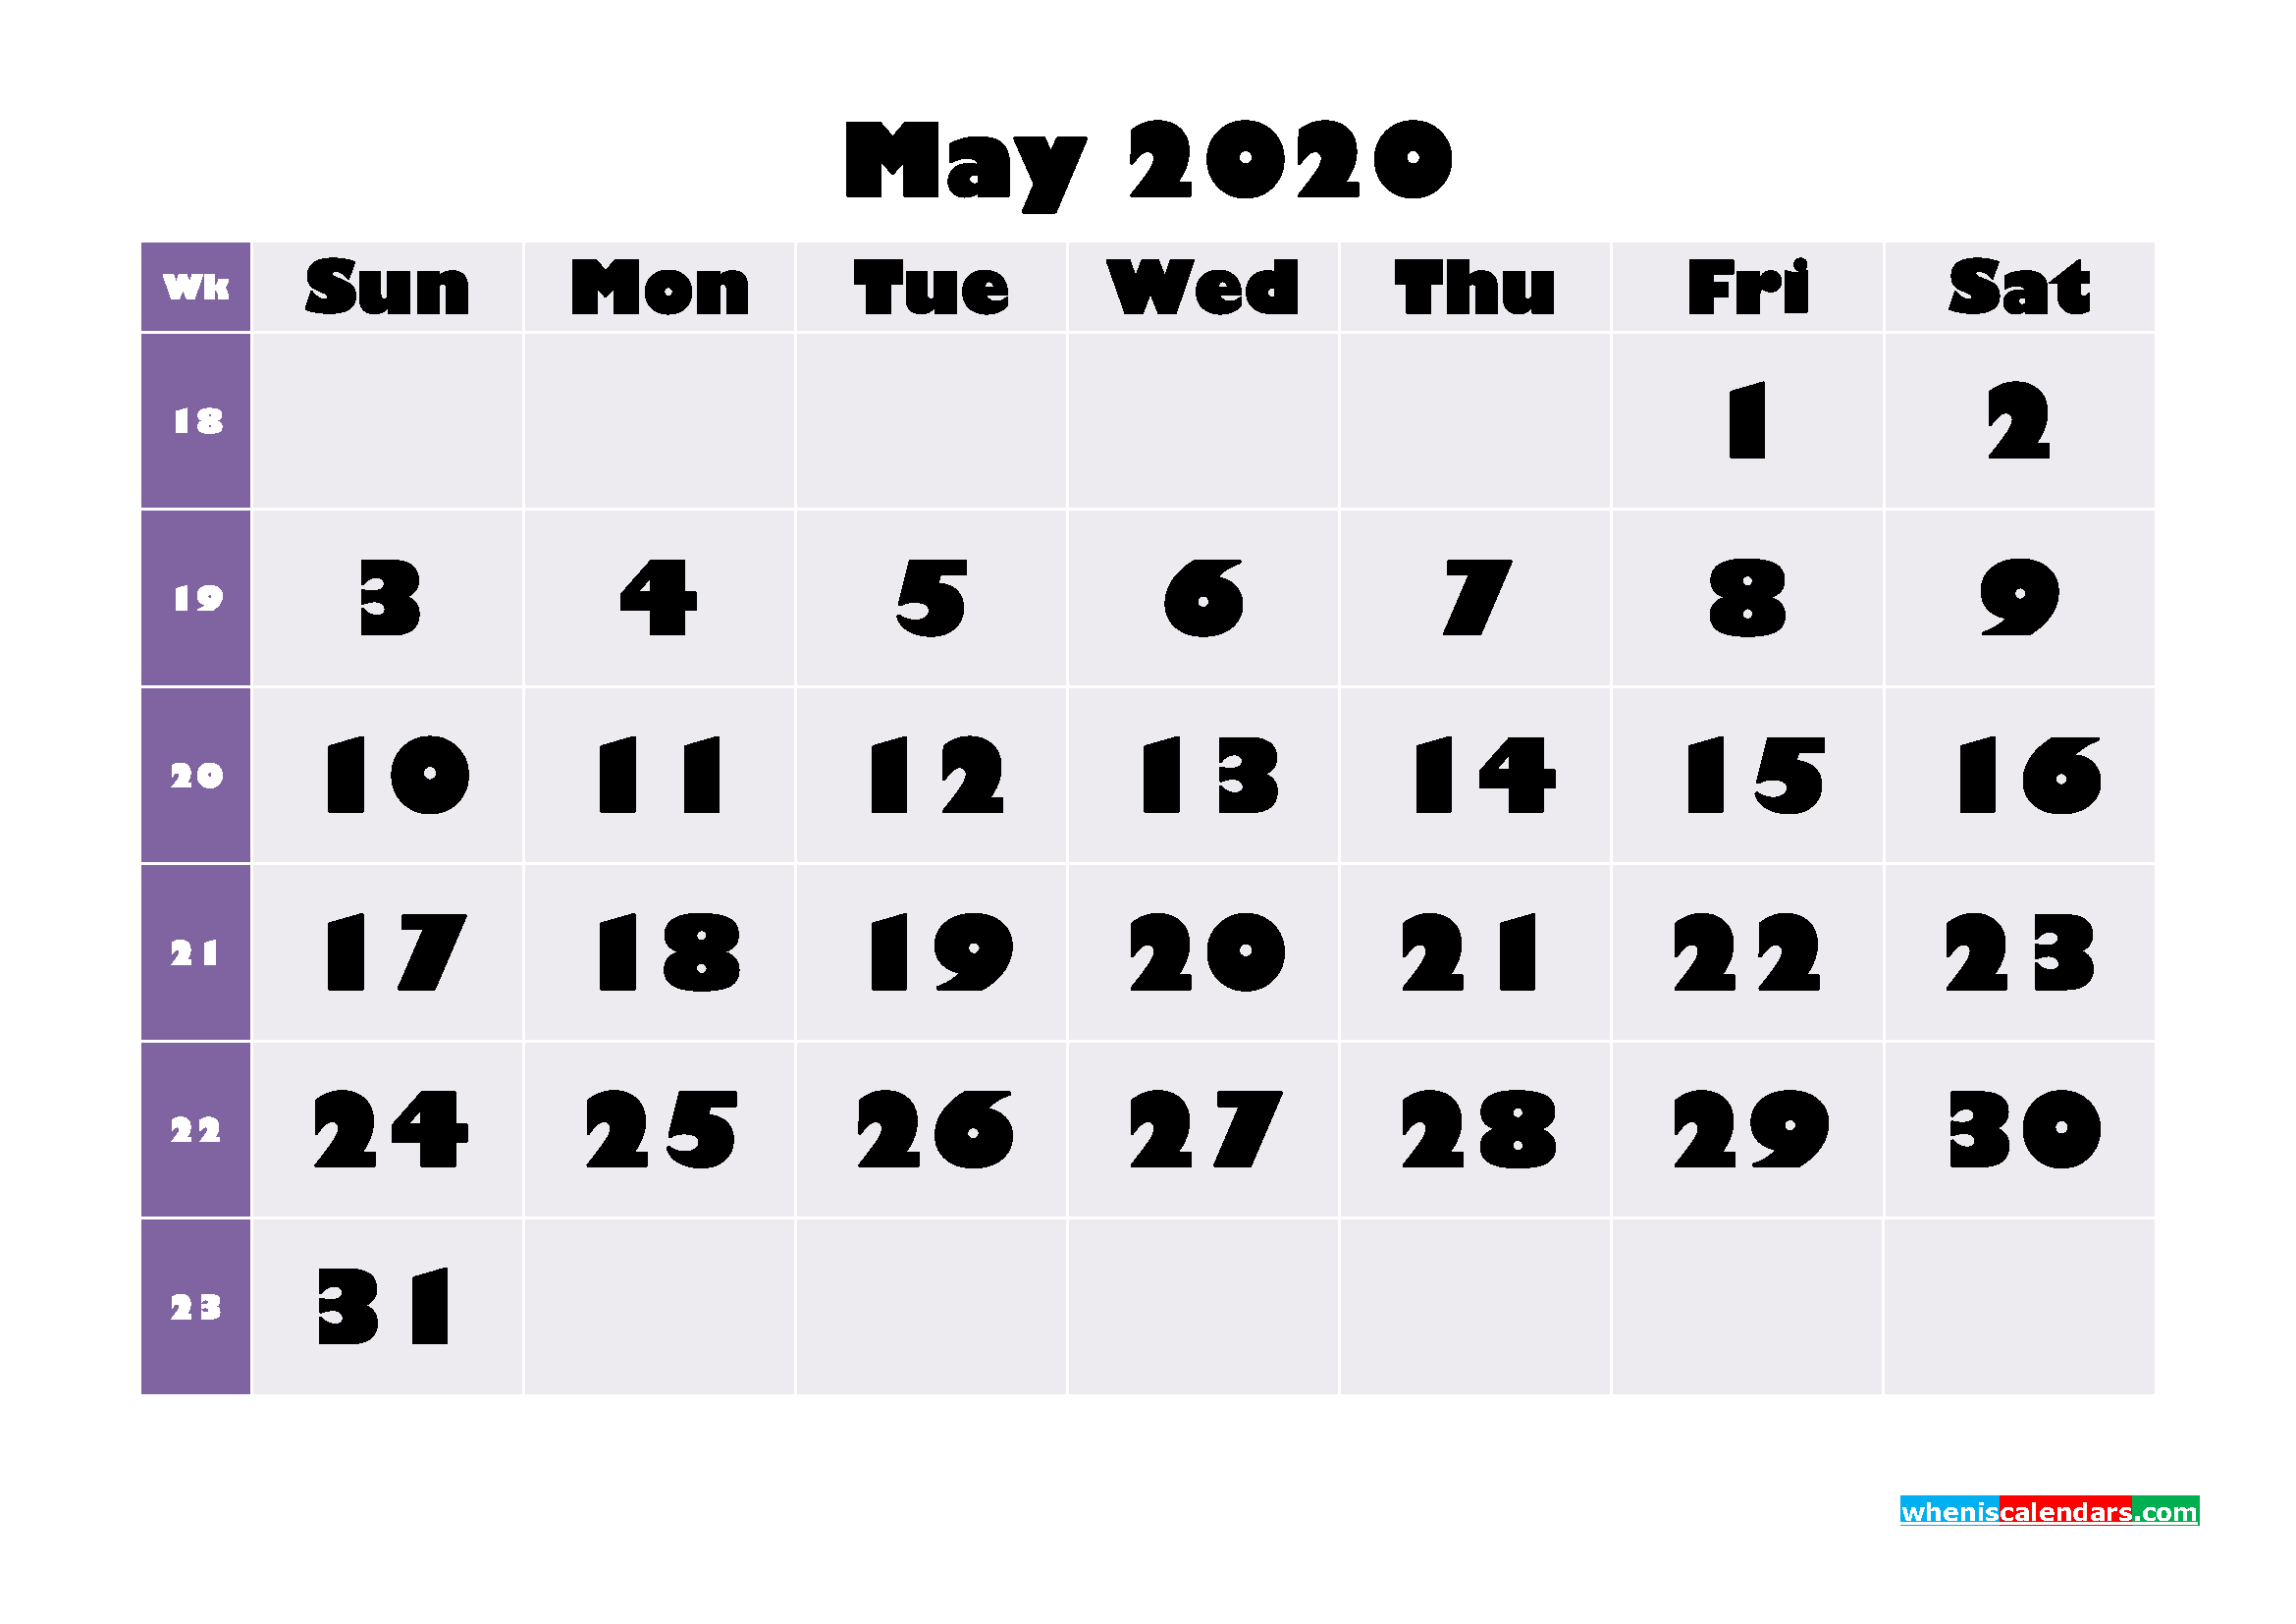 Free Printable May 2020 Calendar - No.m20b677